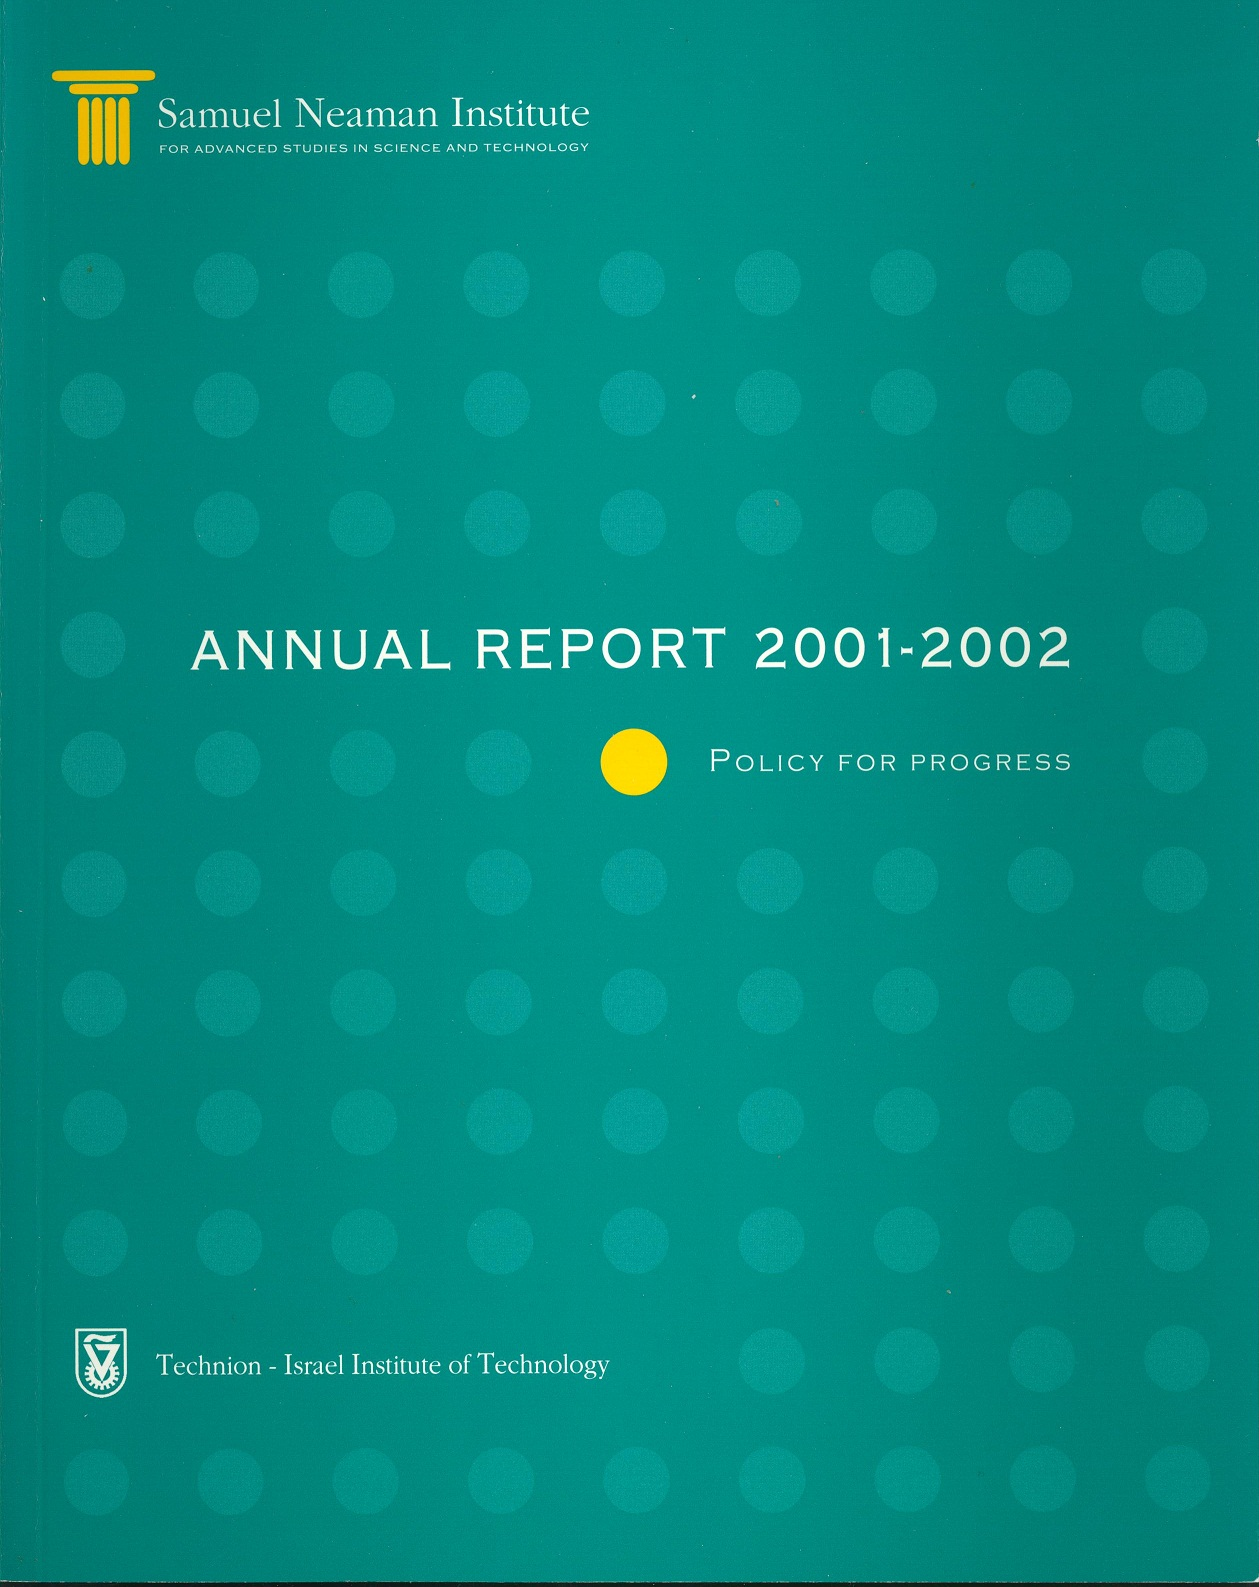 Annual Report 2001-2002 Samuel Neaman Institute